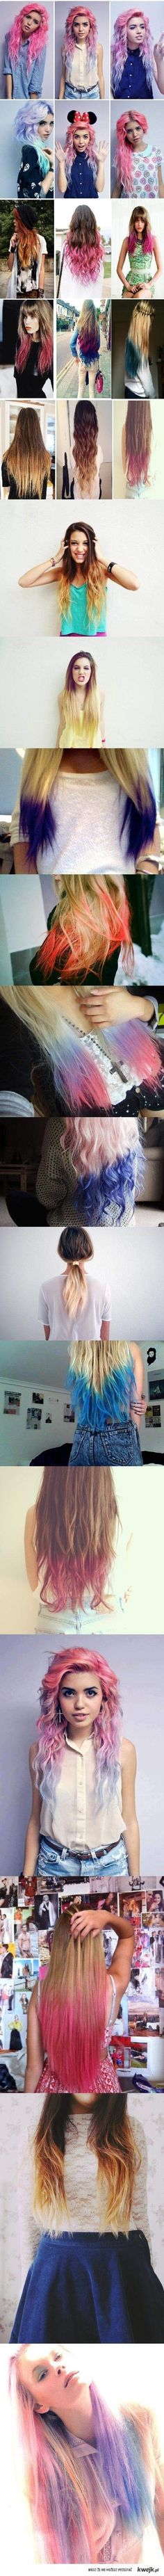 I would so do this if I was blond